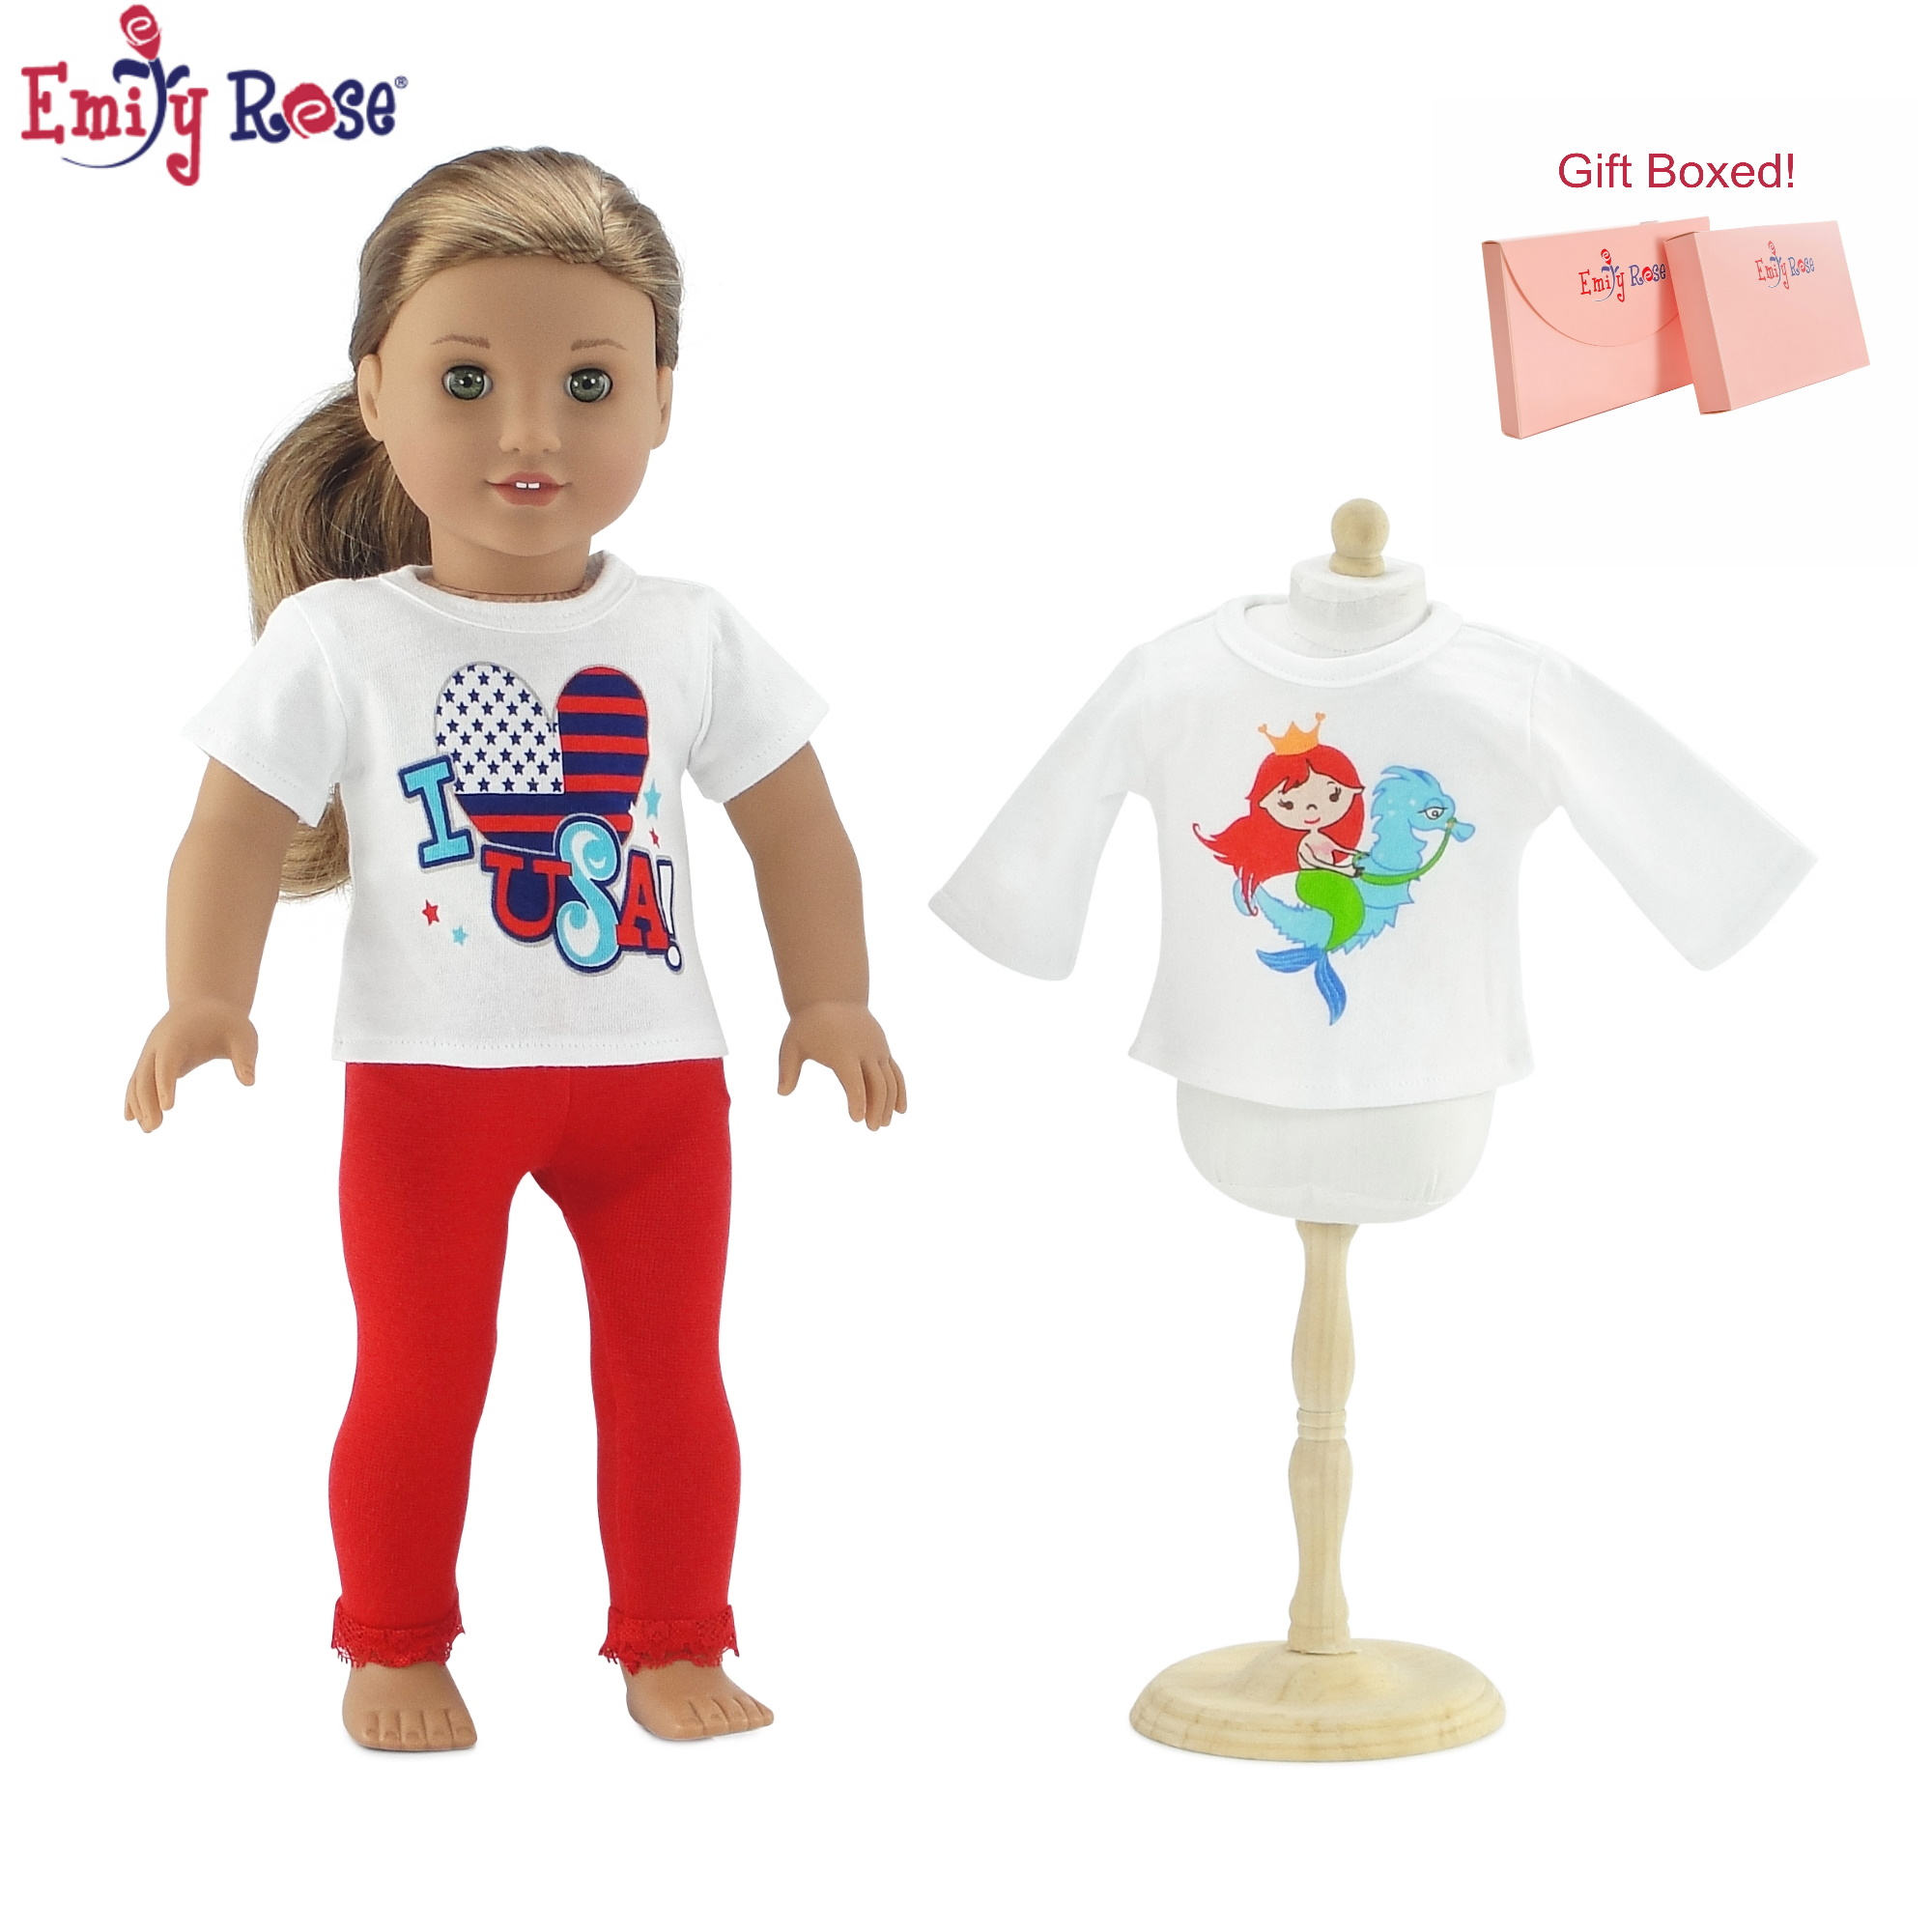 "Pink Short Sleeve Top with Horse Graphic Fits 18/"" American Girl  Dolls"